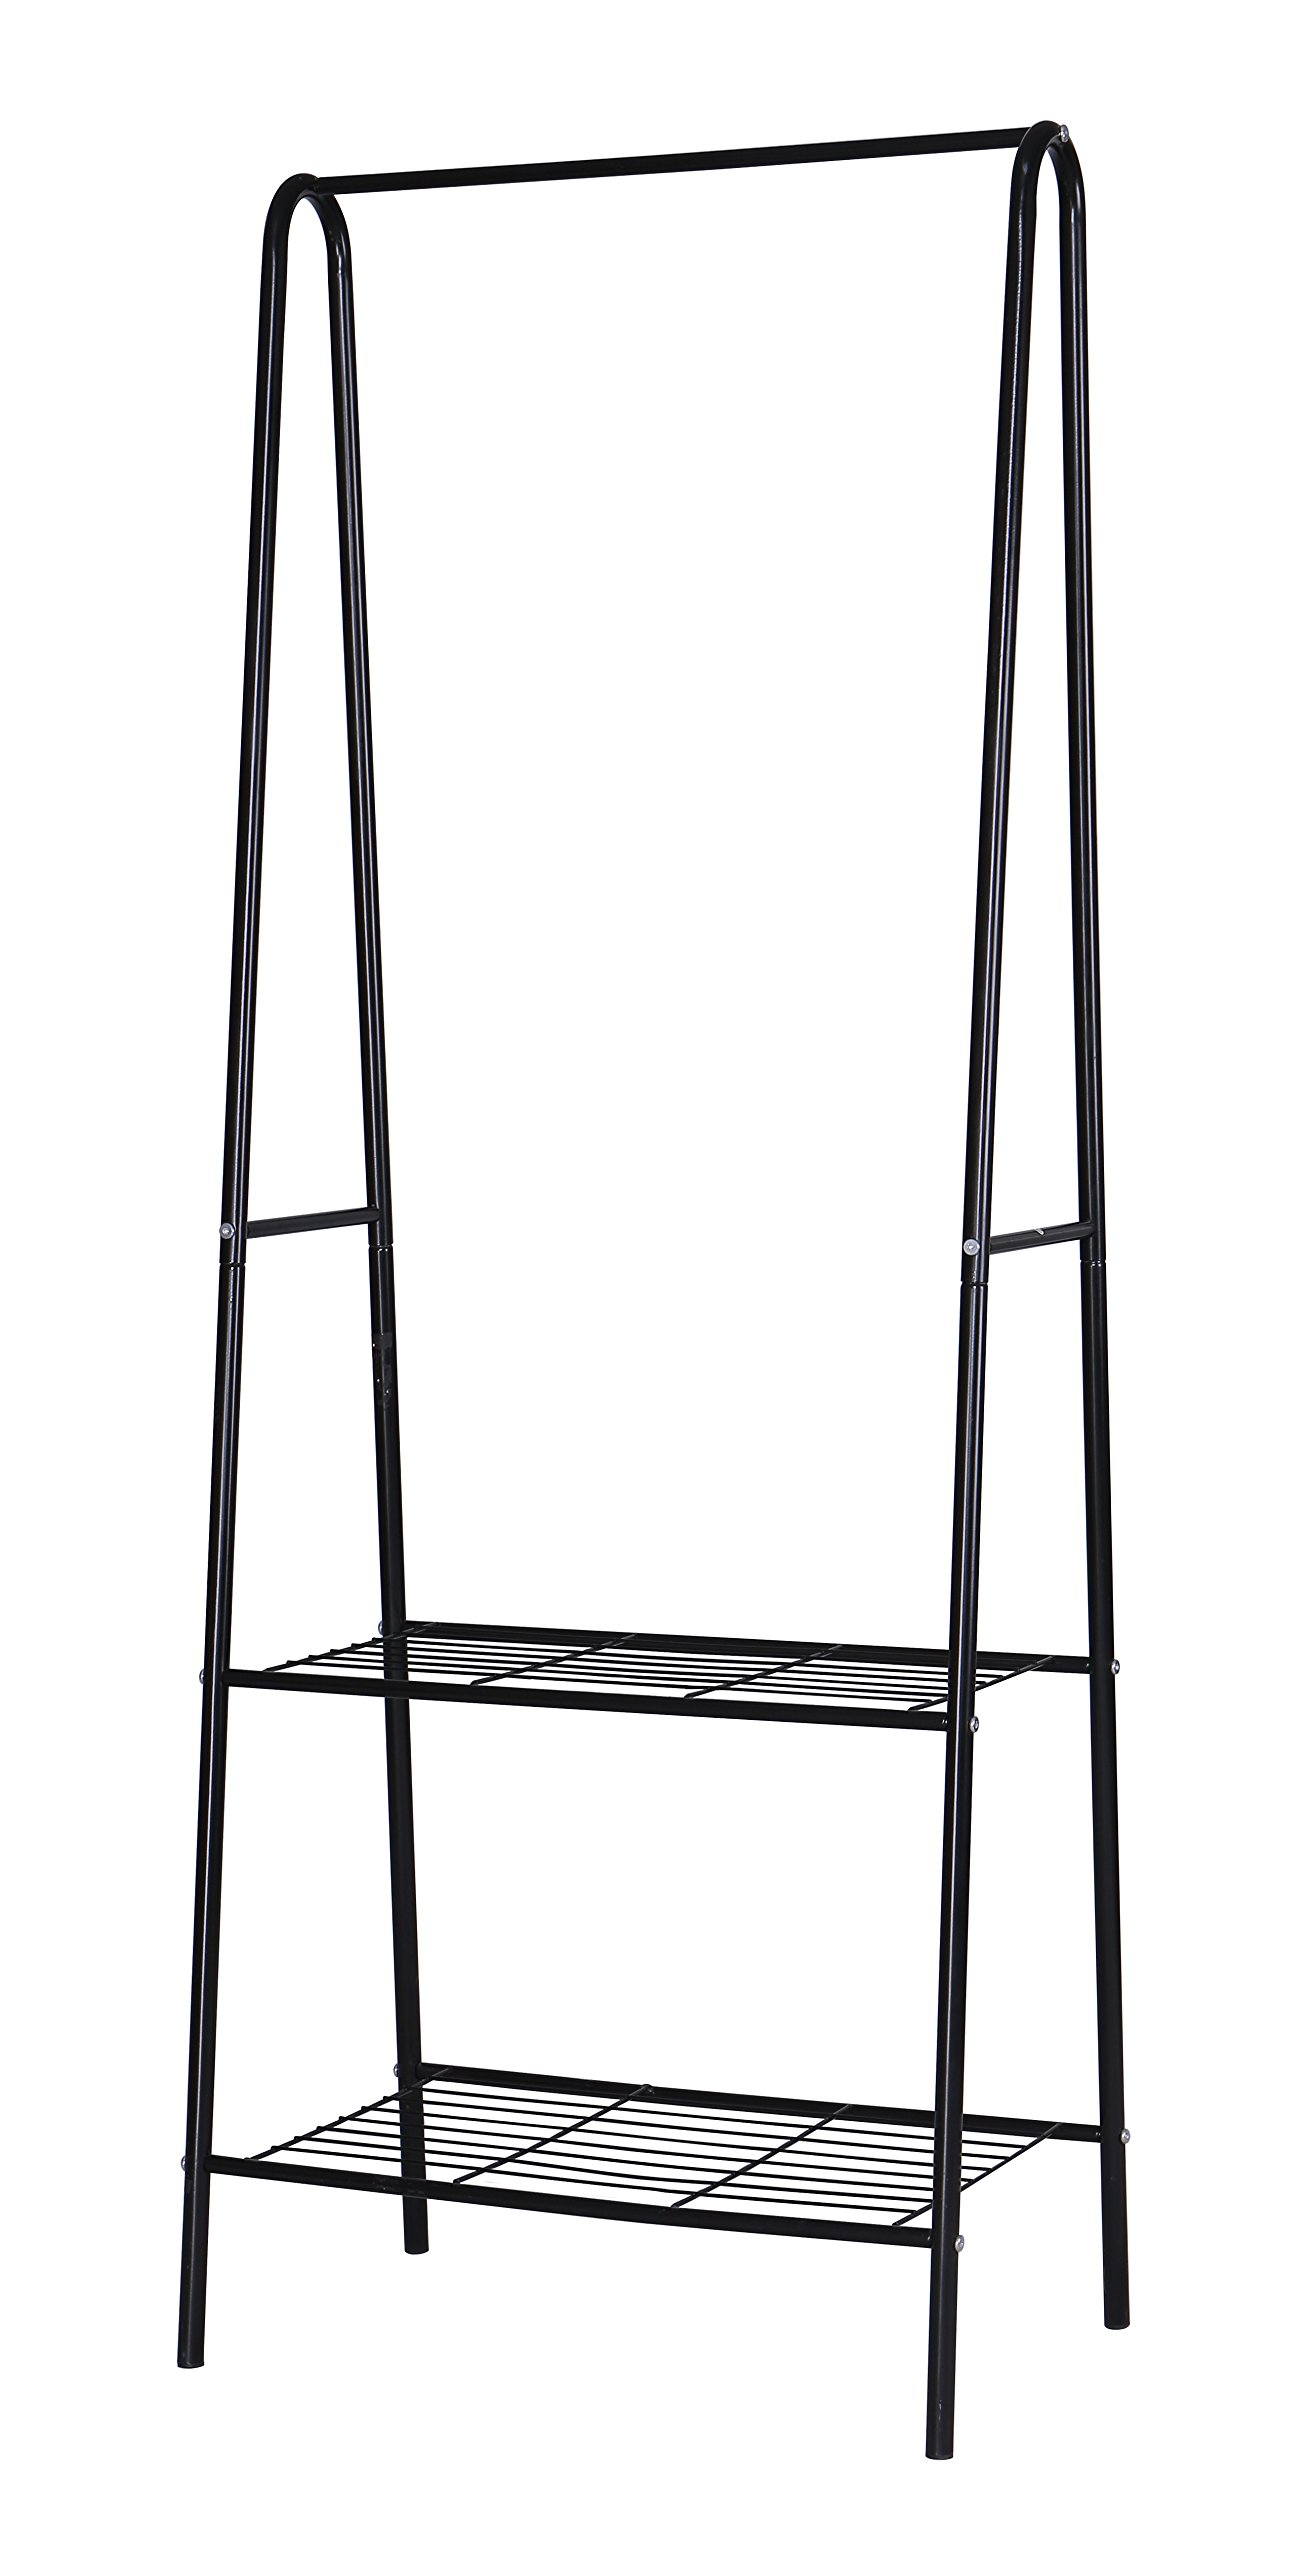 "MULSH Clothing Garment Rack Coat Organizer Storage Shelving Unit Entryway Storage Shelf 2-Tier Metal Shelf in Black, 24.0""Wx15.2""Dx63""H - STURDY GARMENT RACK:Made of diameter 19mm powder-coated metal tubes and high quality metal wires ,this garment rack is durable while using. 2-TIER COAT RACK:Enough storage space to meet various demands,totally 2-tier of shelves to store folded clothes ,accessories,quilt,storage boxes ,shoes etc.1 top rod can hang garment and coats. KEEP YOUR STUFF WELL-ORGANIZED CLOTHING RACK:This garment rack is solid and easy-moving.And it measures 24.02""Wx15.16""Dx63.01""H.Weight:Approx.7.46lbs/3.39kgs.So its perfect size makes it great for any place of your home without occupying too much space,such as balcony hallway,laundry room,entryway or closet. - hall-trees, entryway-furniture-decor, entryway-laundry-room - 71PFiJcqPkL -"